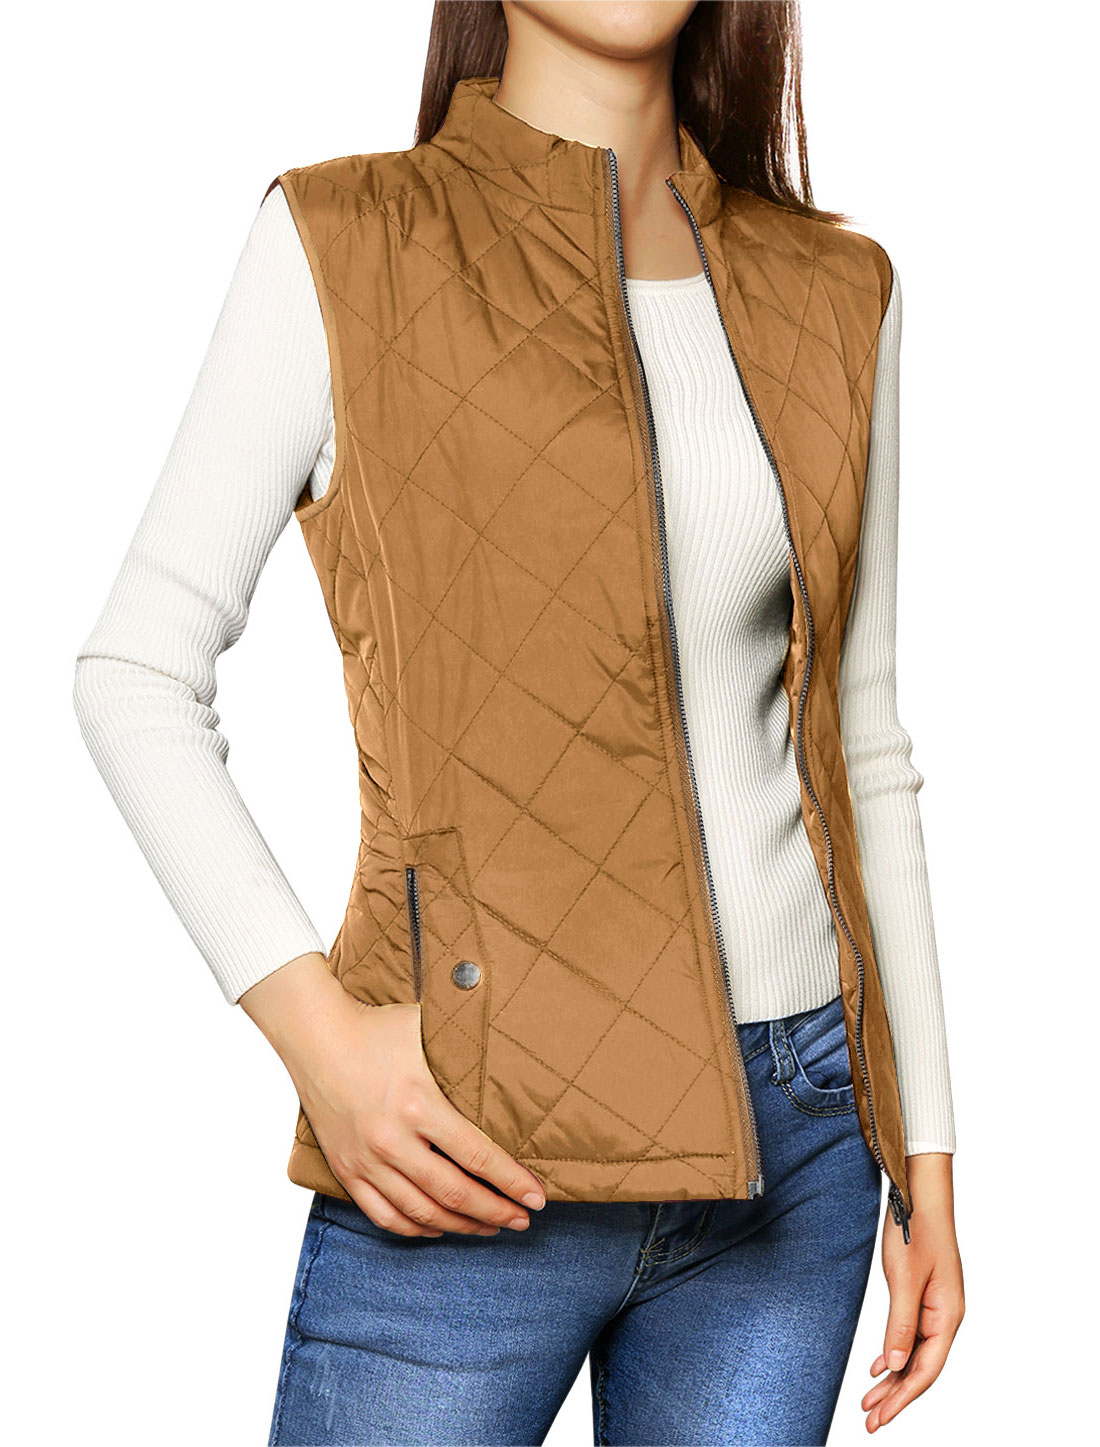 Allegra K Woman Zip Up Front Pockets Quilted Padded Vest